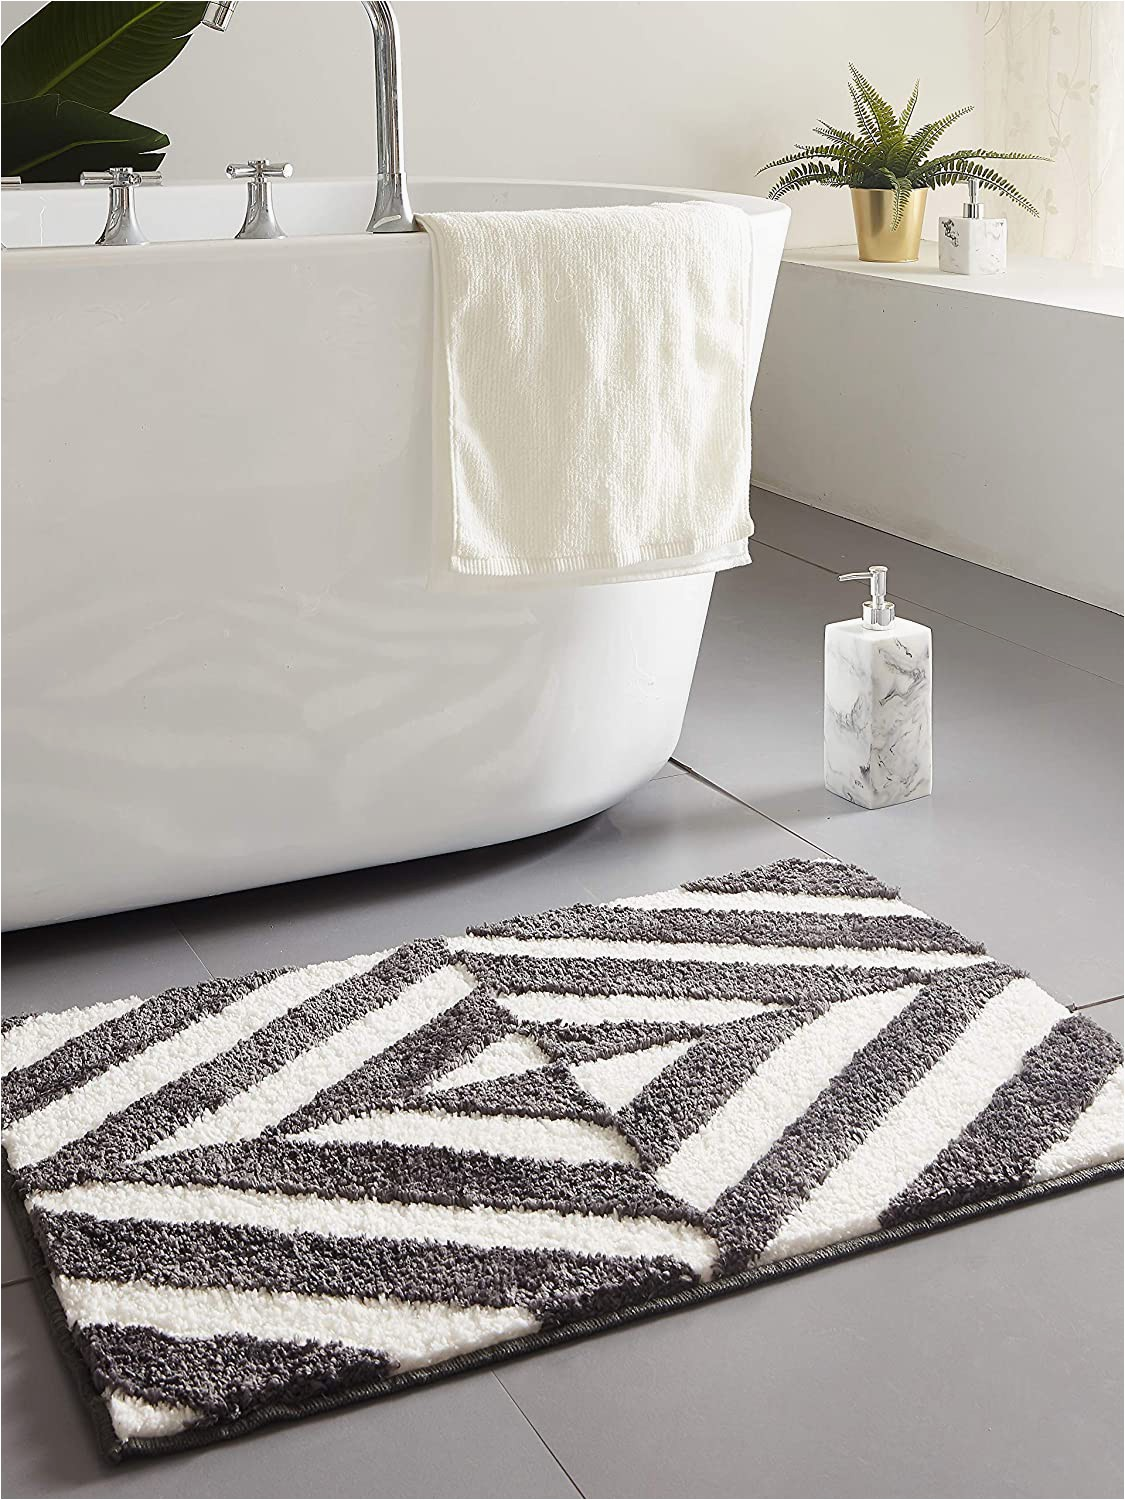 Good Quality Bath Rugs Amazon Desiderare Thick Fluffy Dark Grey Bath Mat 31